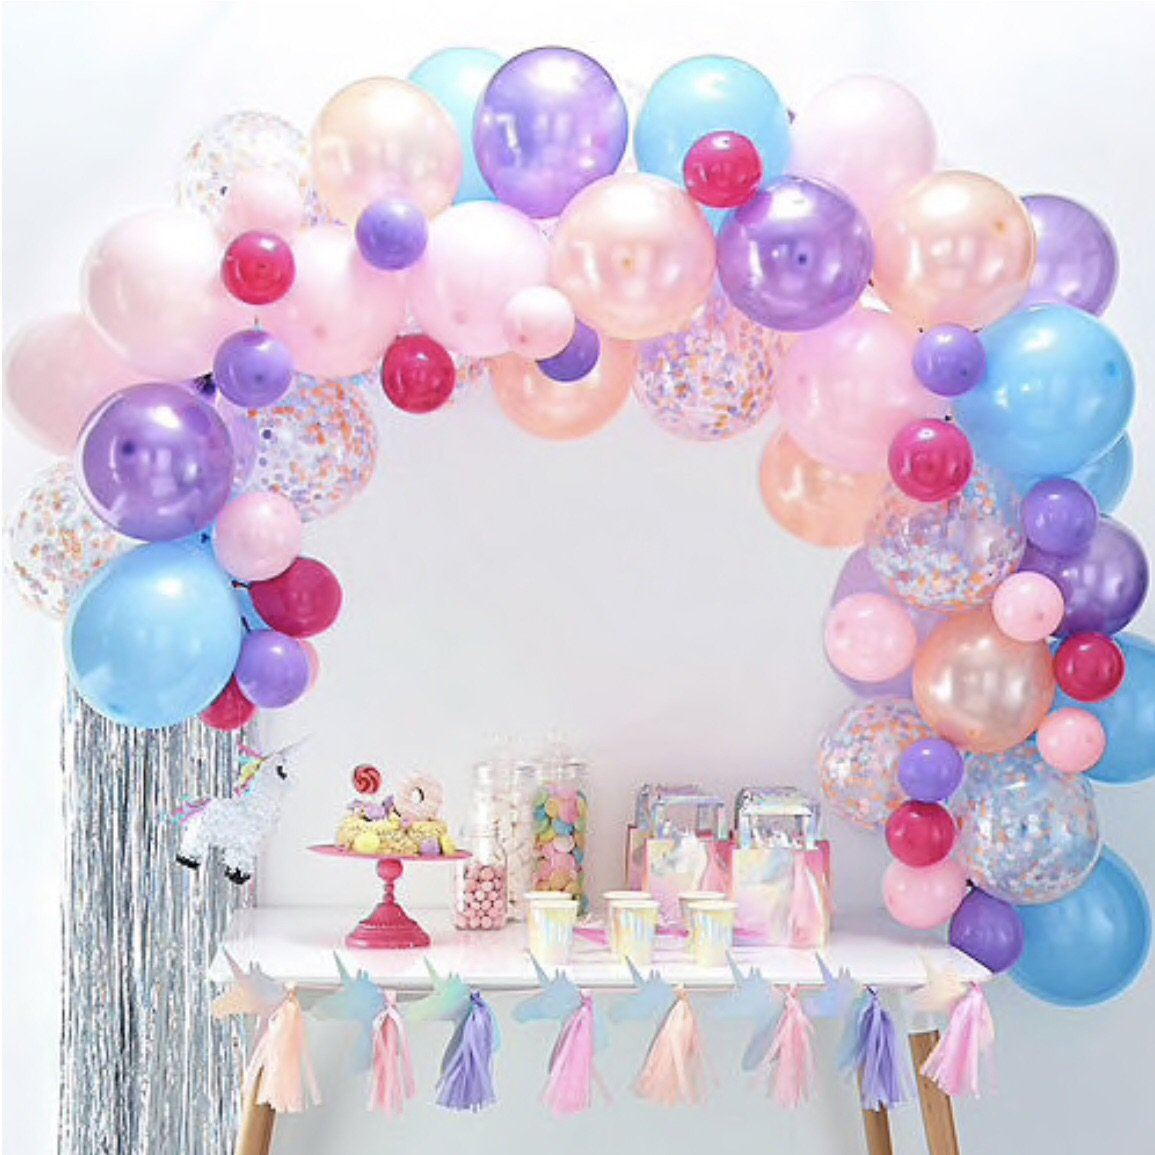 BALLOON ARCH - PASTEL GINGER RAY, Balloons, GINGER RAY - Bon + Co. Party Studio